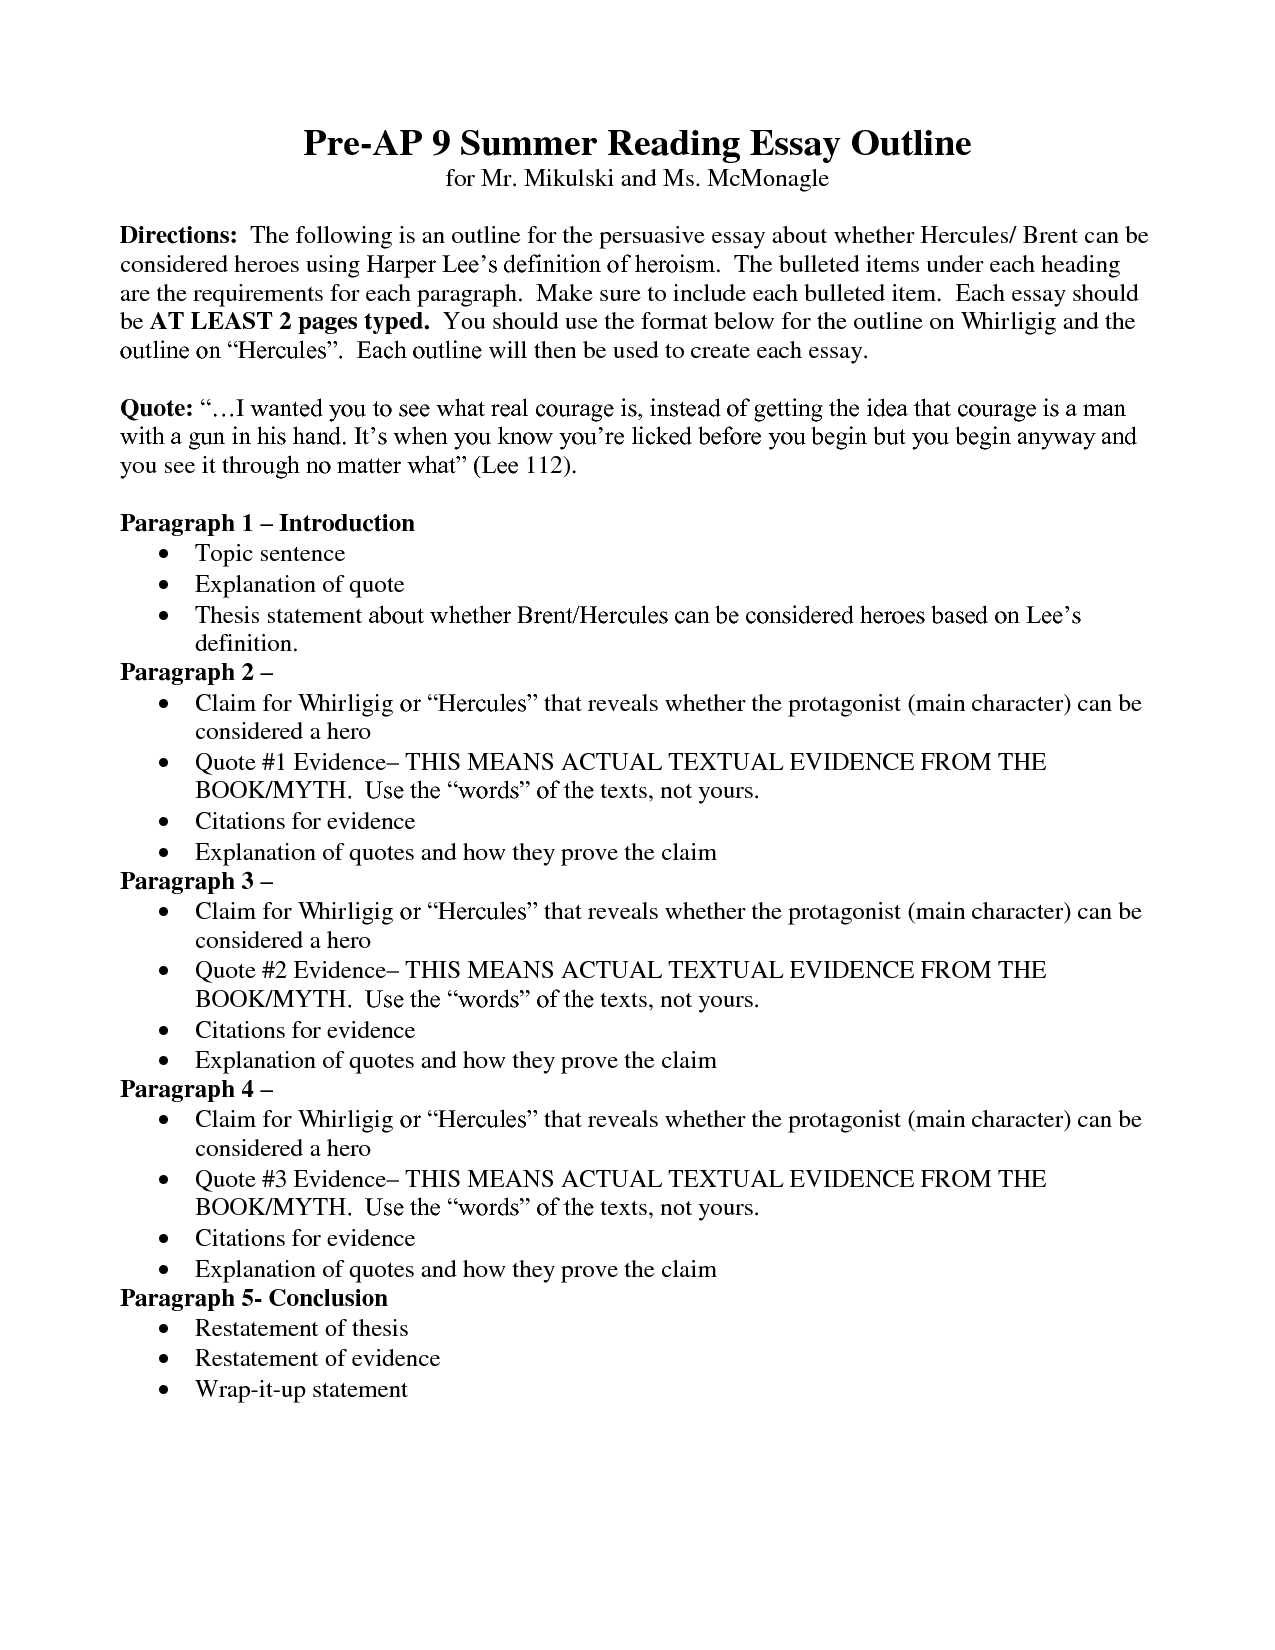 008 Writing Definition Essay About Heroism Essays Sample Format Example Of Freedom On Happiness Success Topics Love Family Respect Extended Friendship Unique Outline Pdf Hero Full